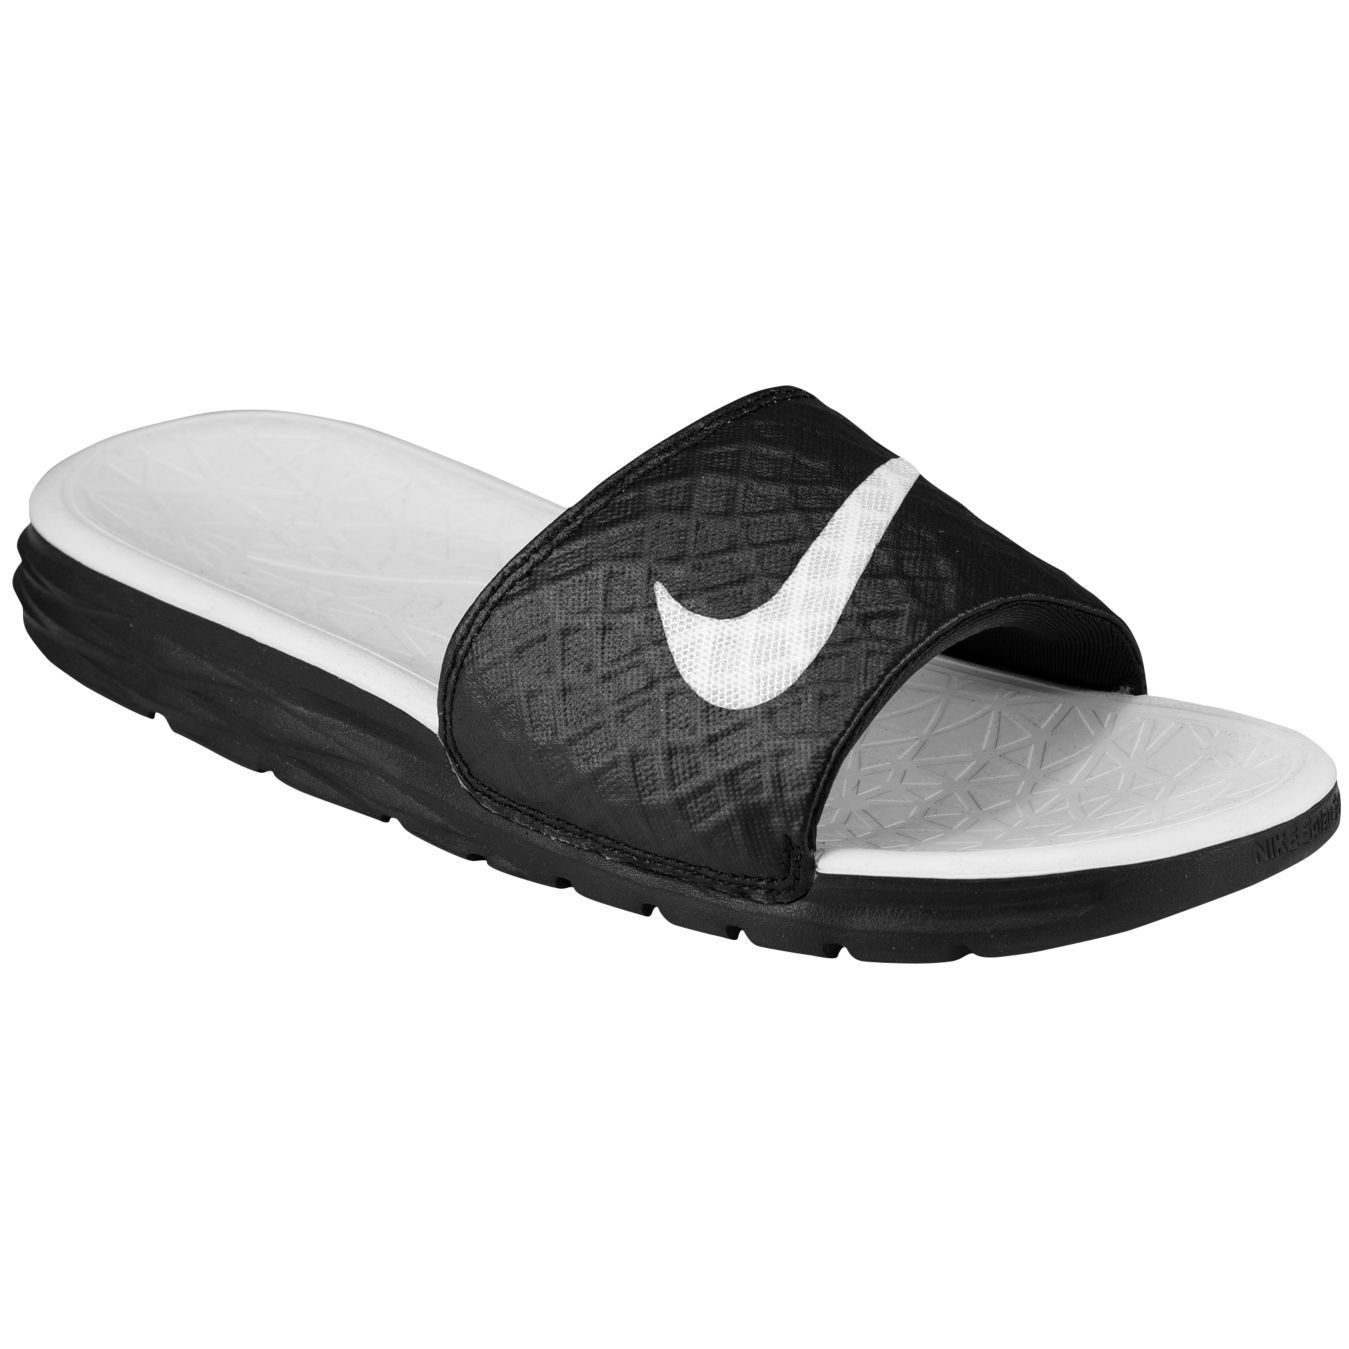 New Nike Womenu2019s Comfort Slide Sandals | Wwathleticshoess